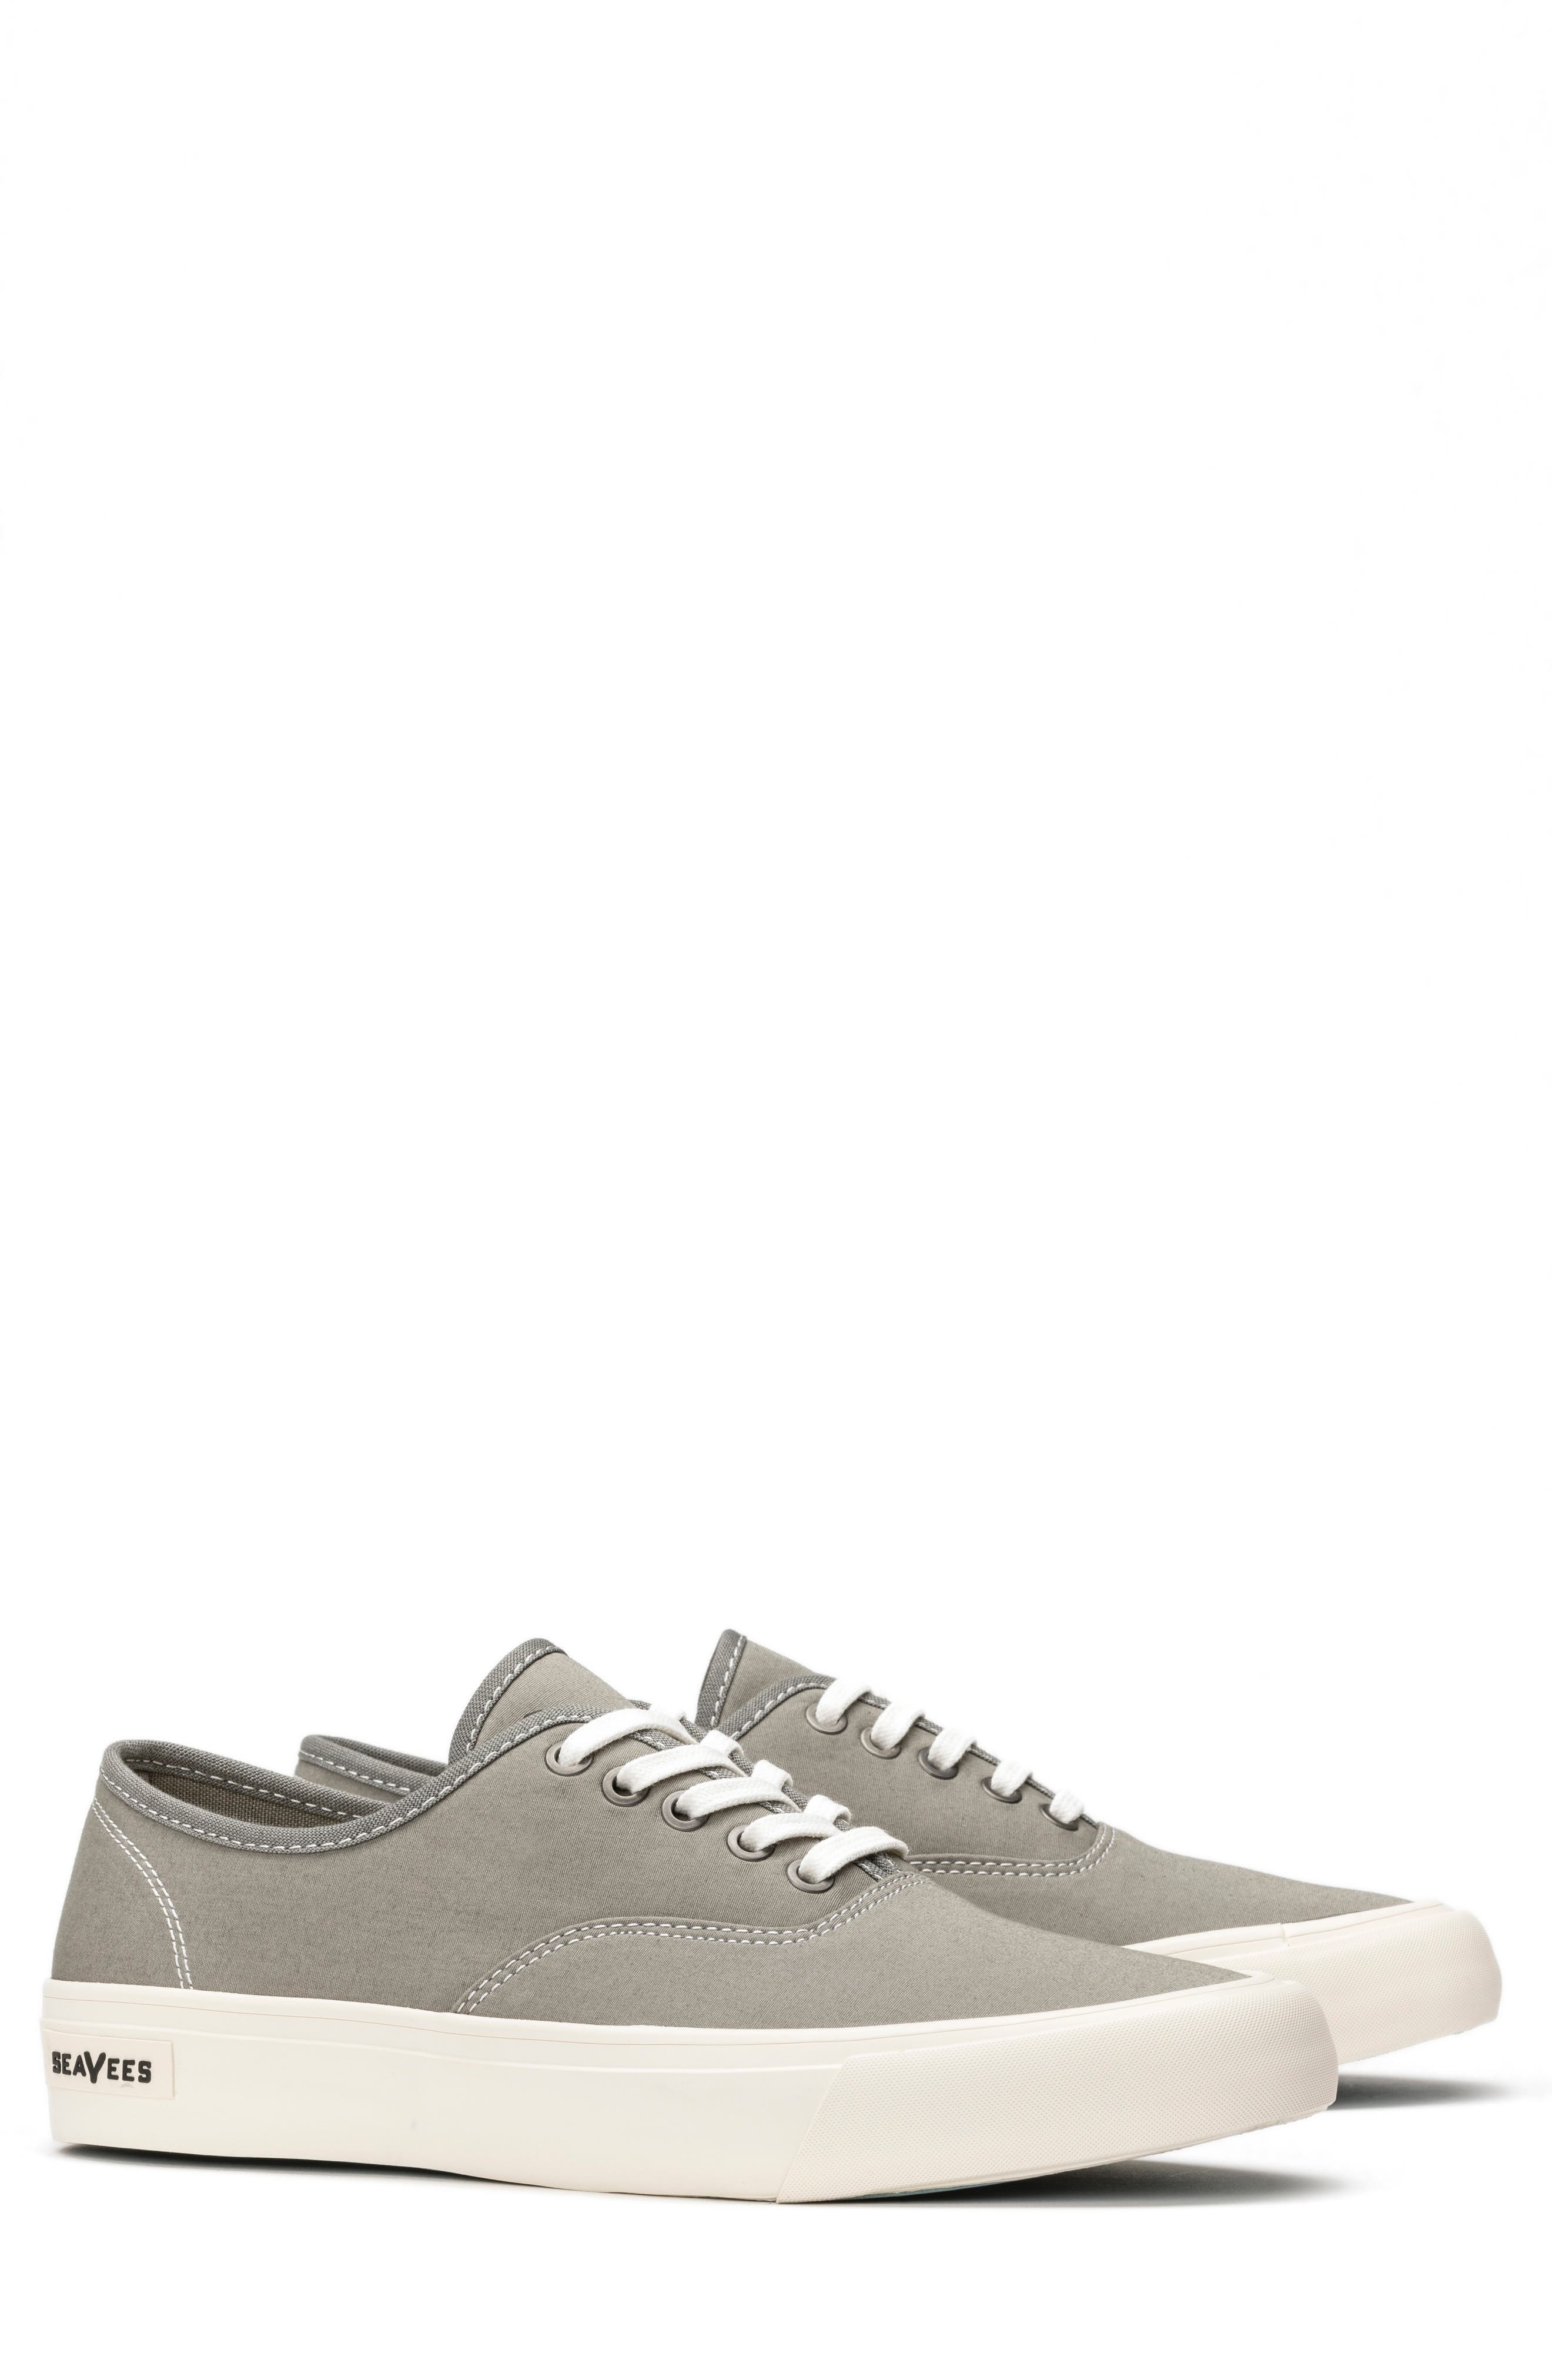 Legend Standard Sneaker,                             Main thumbnail 1, color,                             GRANITE GREY